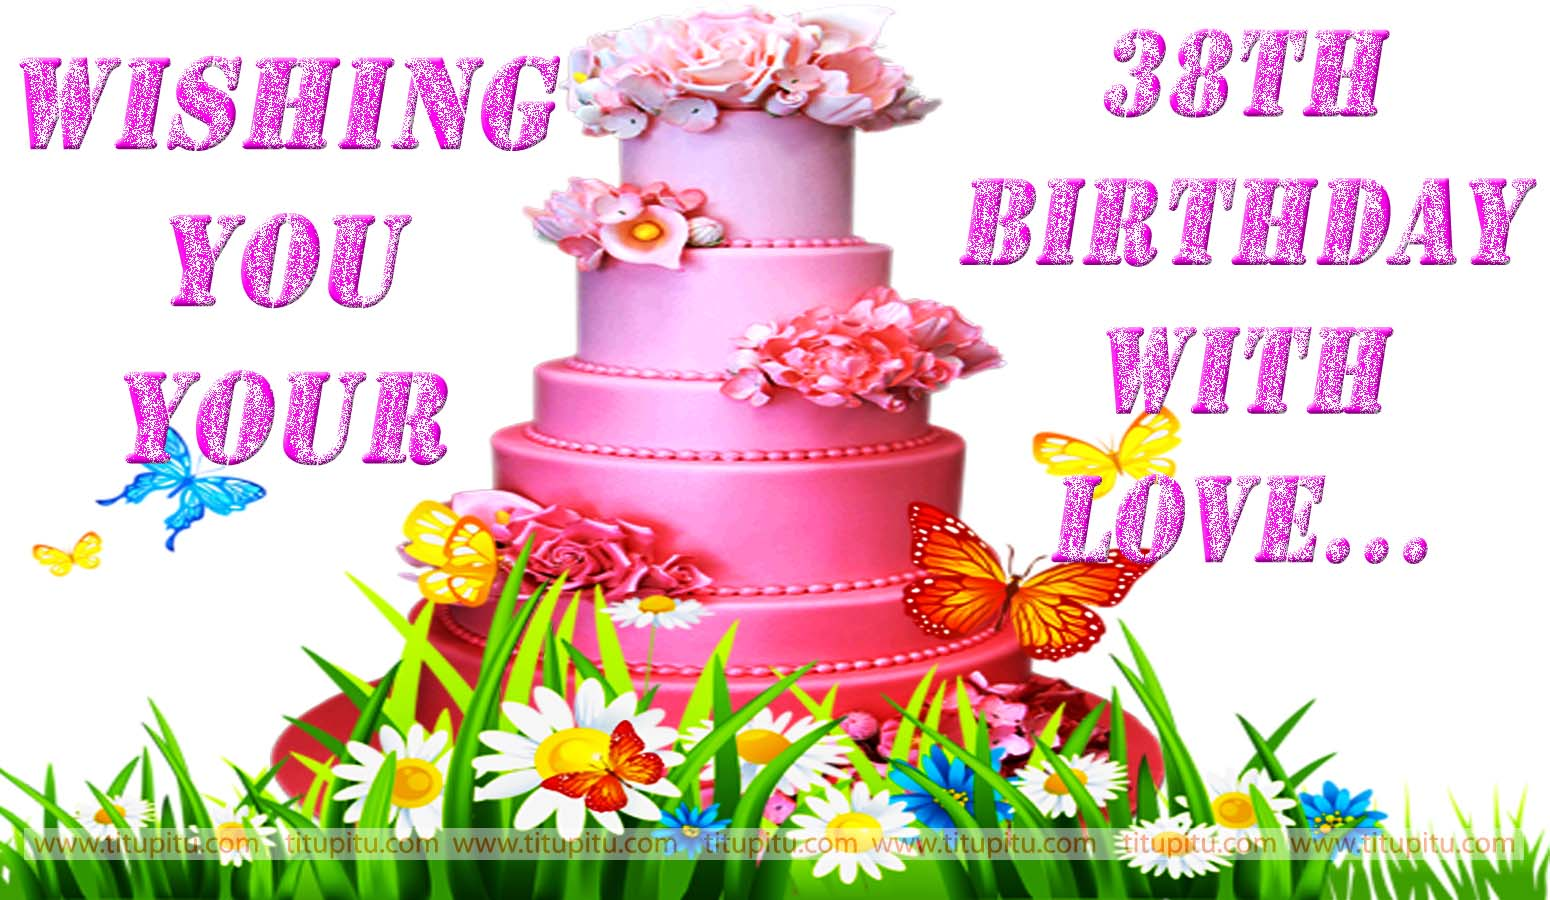 New 38th Birthday Wallpapers And Wishes Jpg 1550 900 Birthday Happy 38 Birthday Wishes